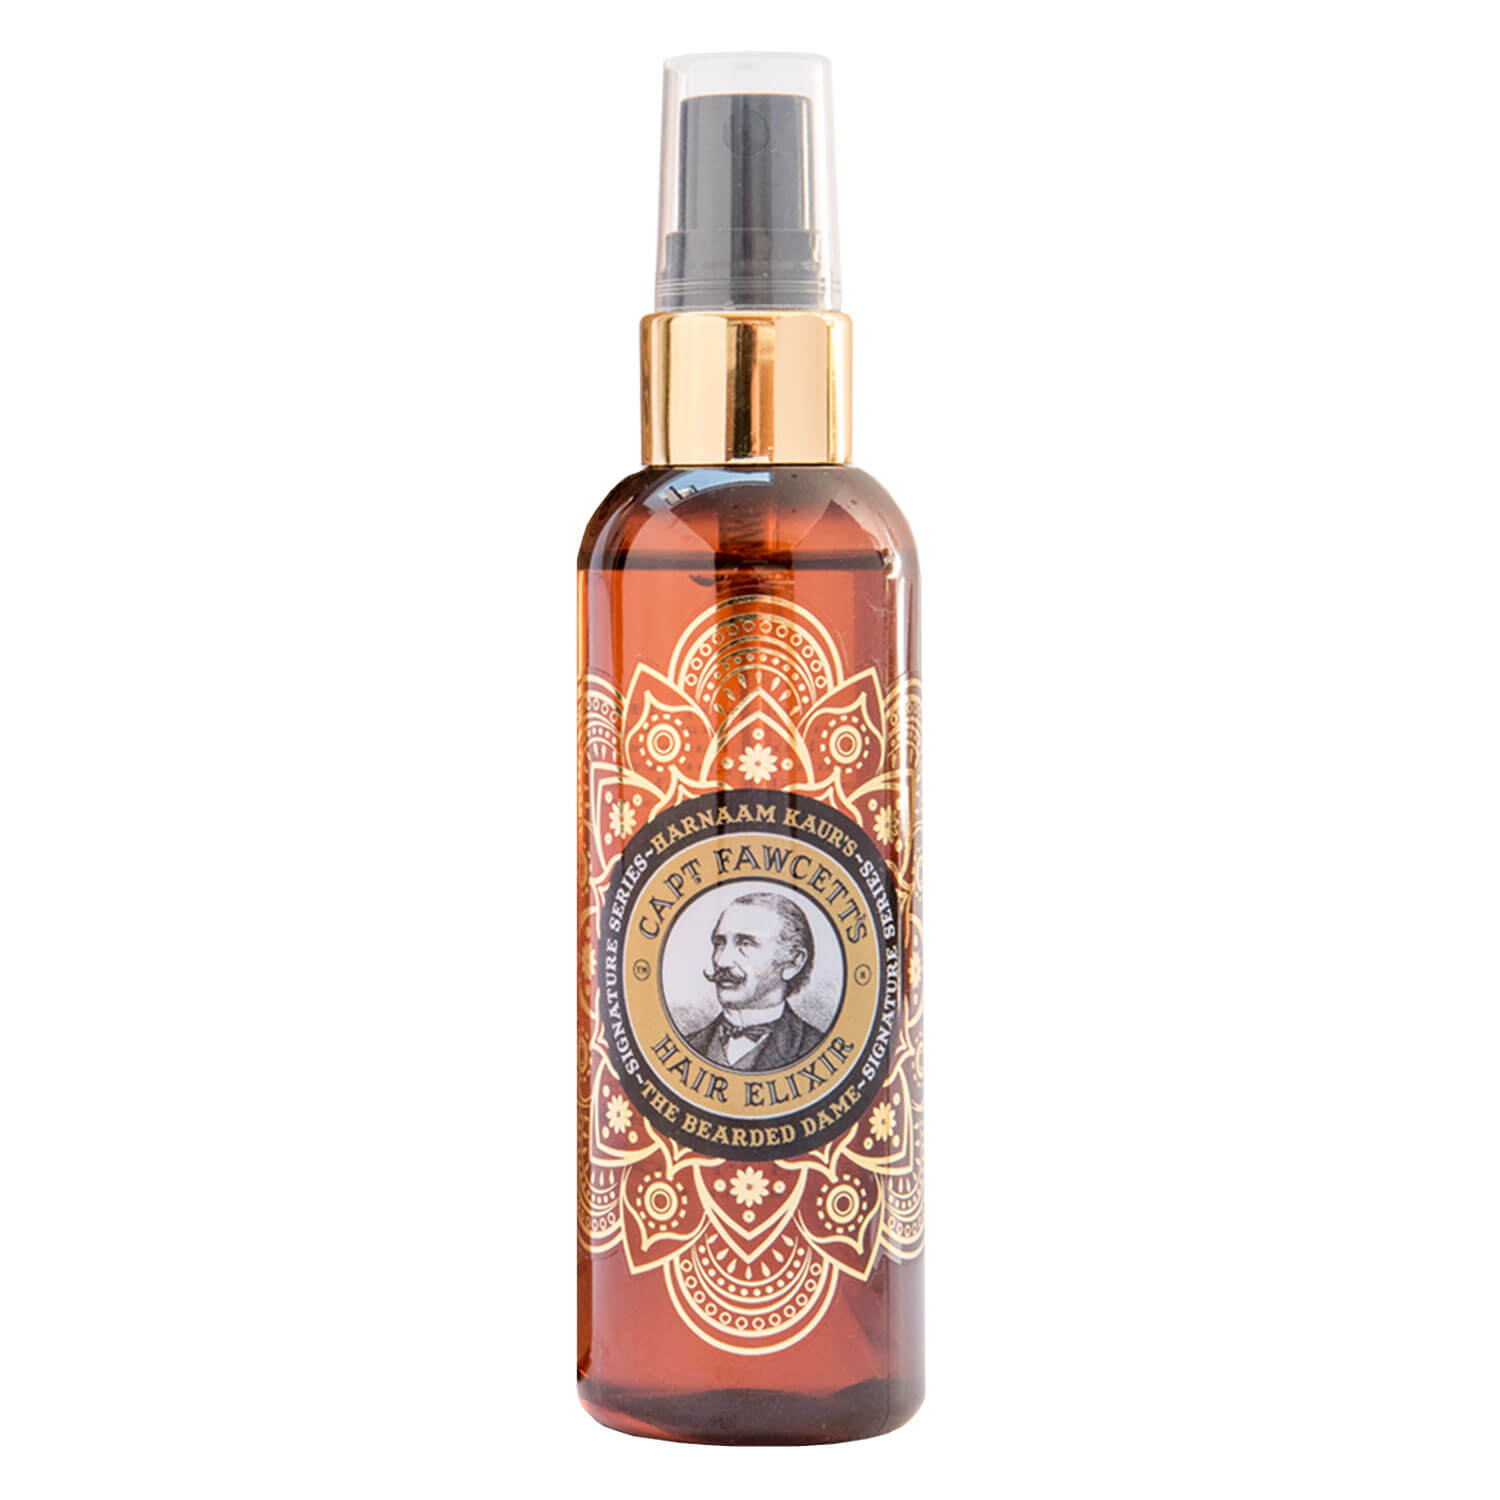 Capt. Fawcett Care - The Bearded Dame Hair Elixir